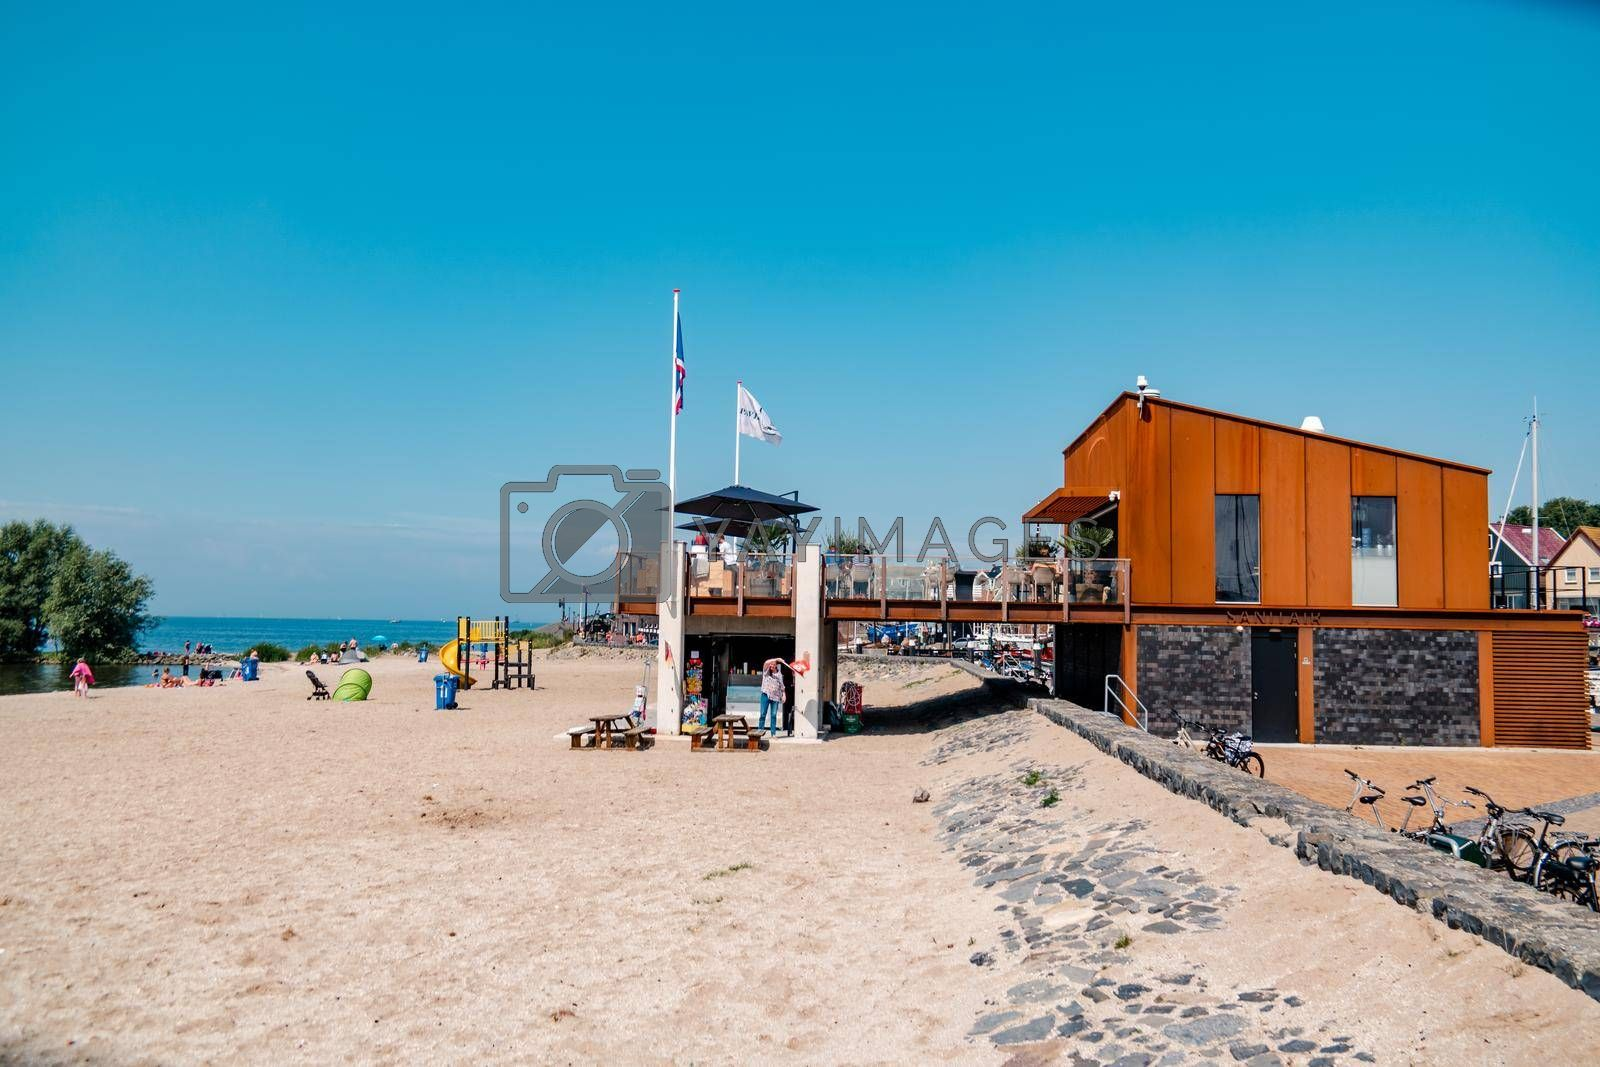 Urk Netherlands August 2020, harbor and lighthouse near the beach on a bright summer day Flevoland Urk Netherlands Europe, new restaurant pavilion on the beach